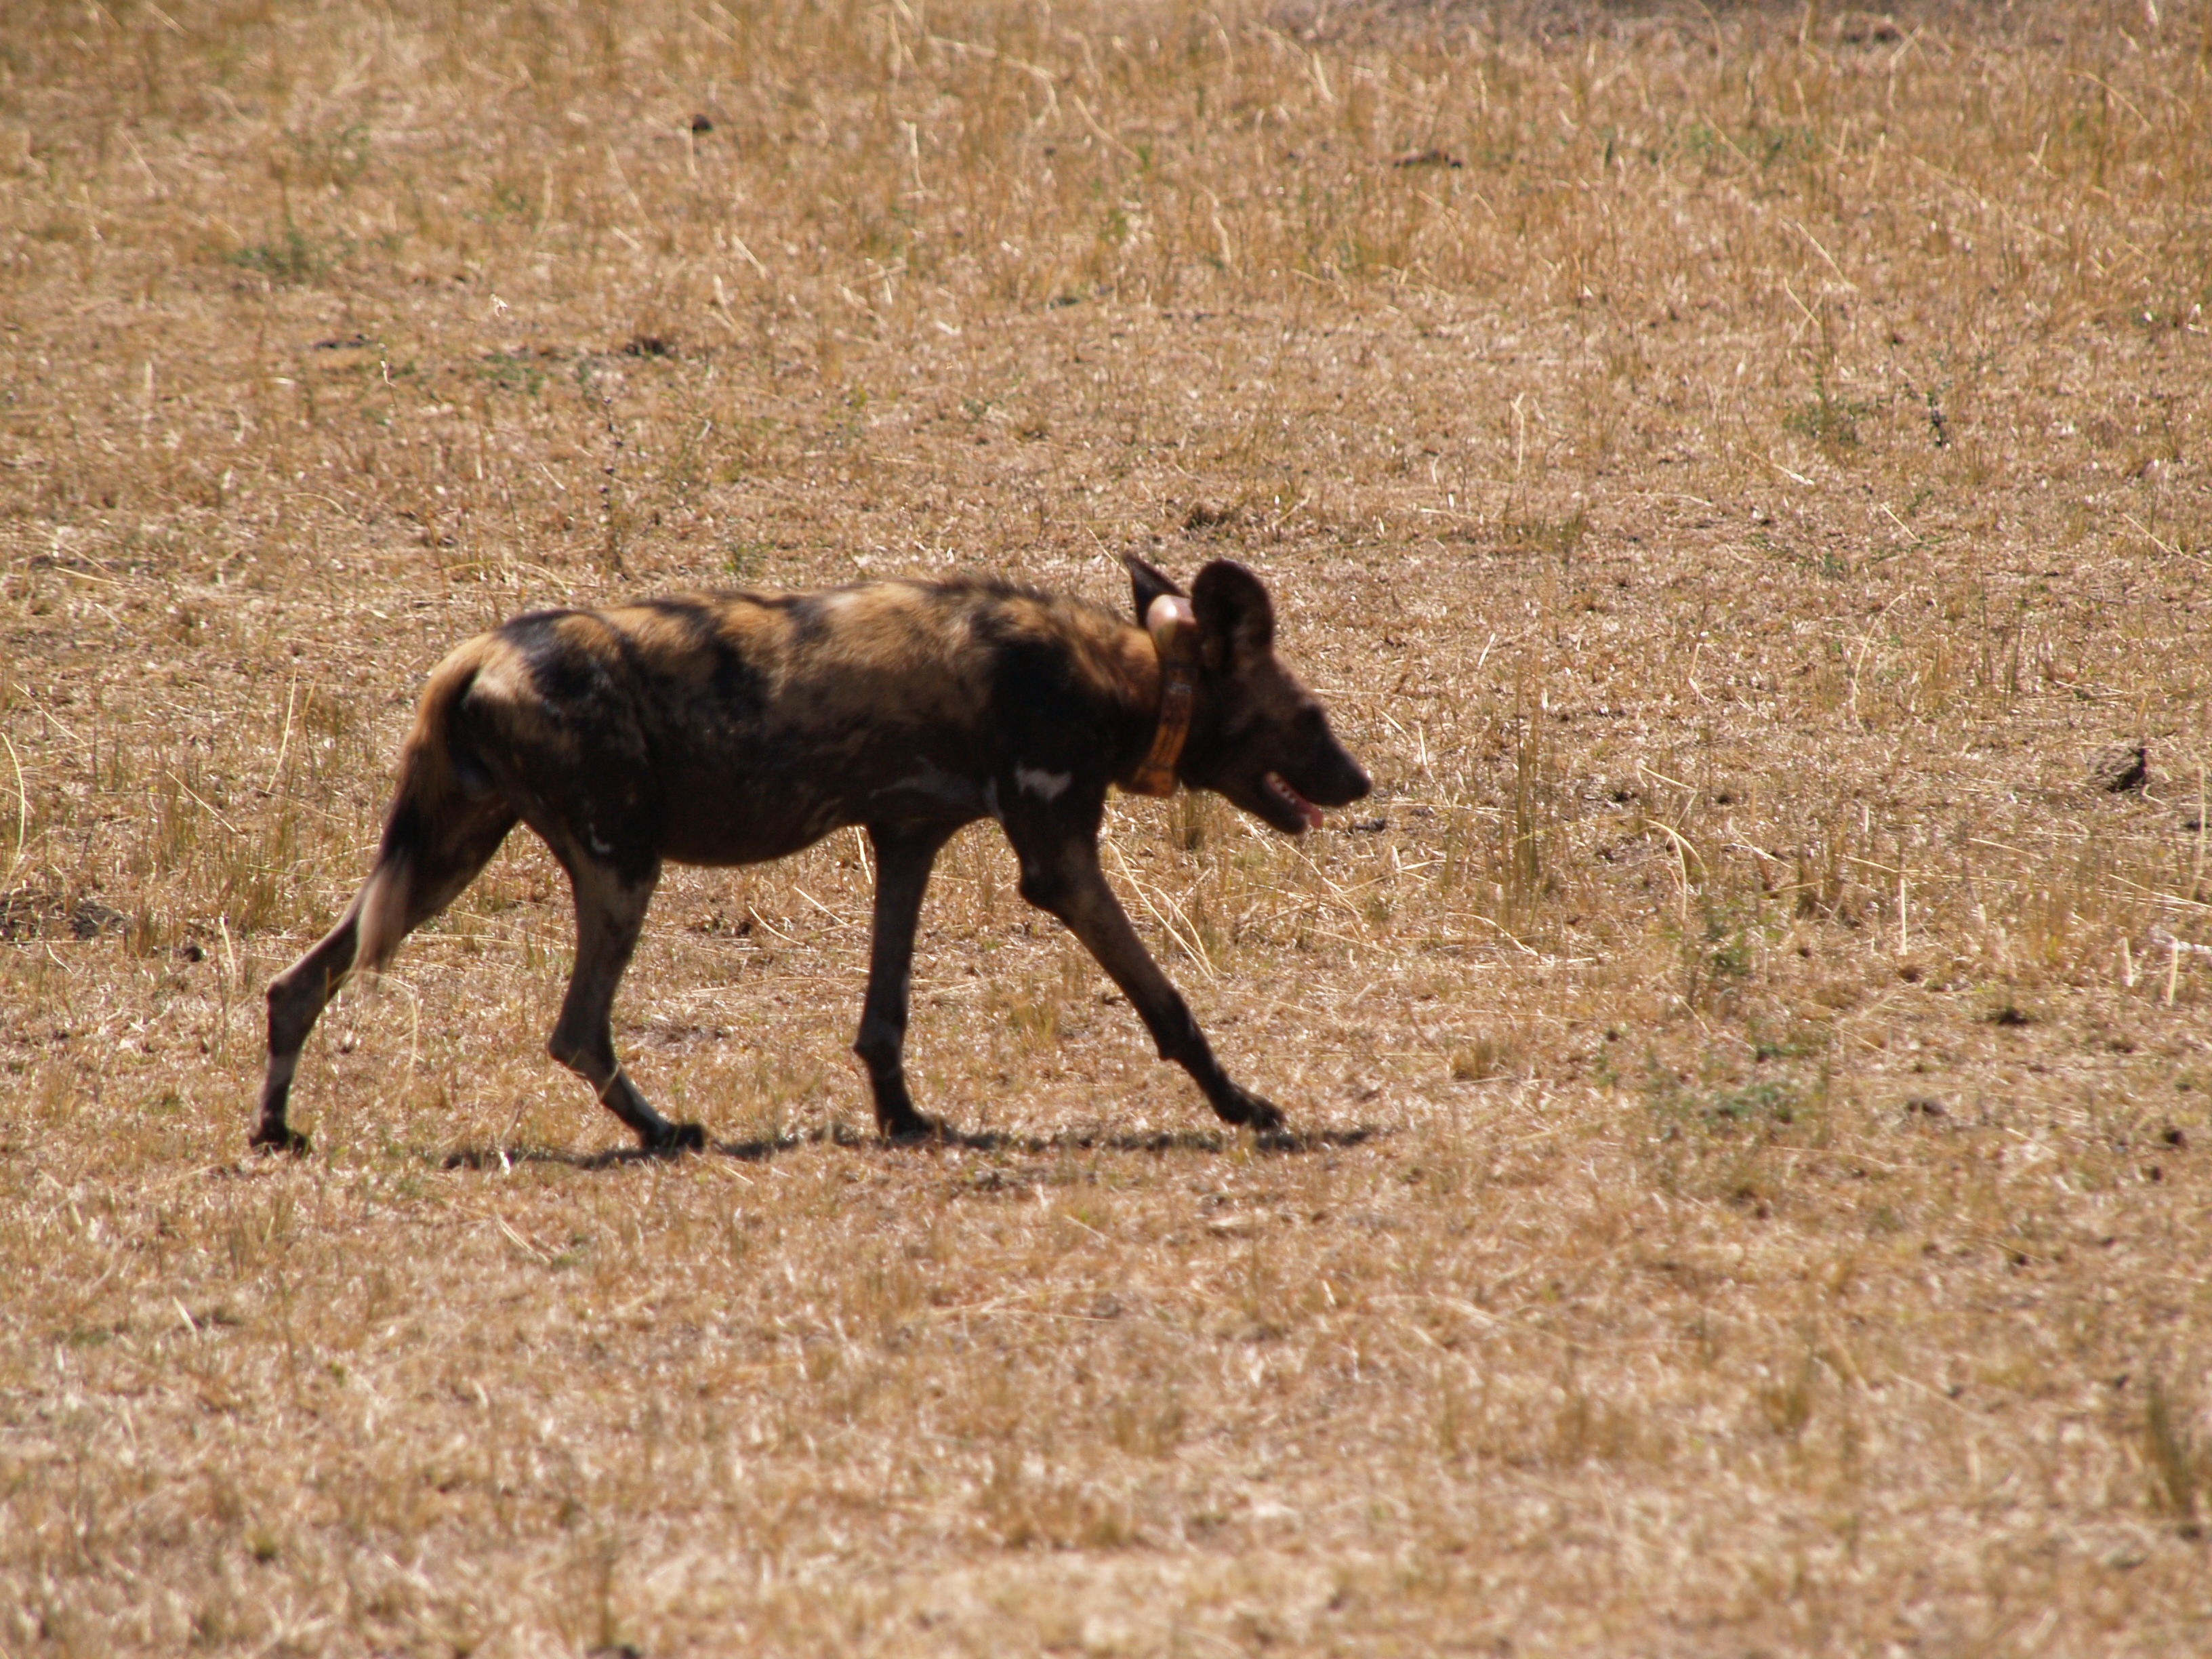 notice the collar around the neck, on going studies to reintroduce the the wild dog to the Serengeti